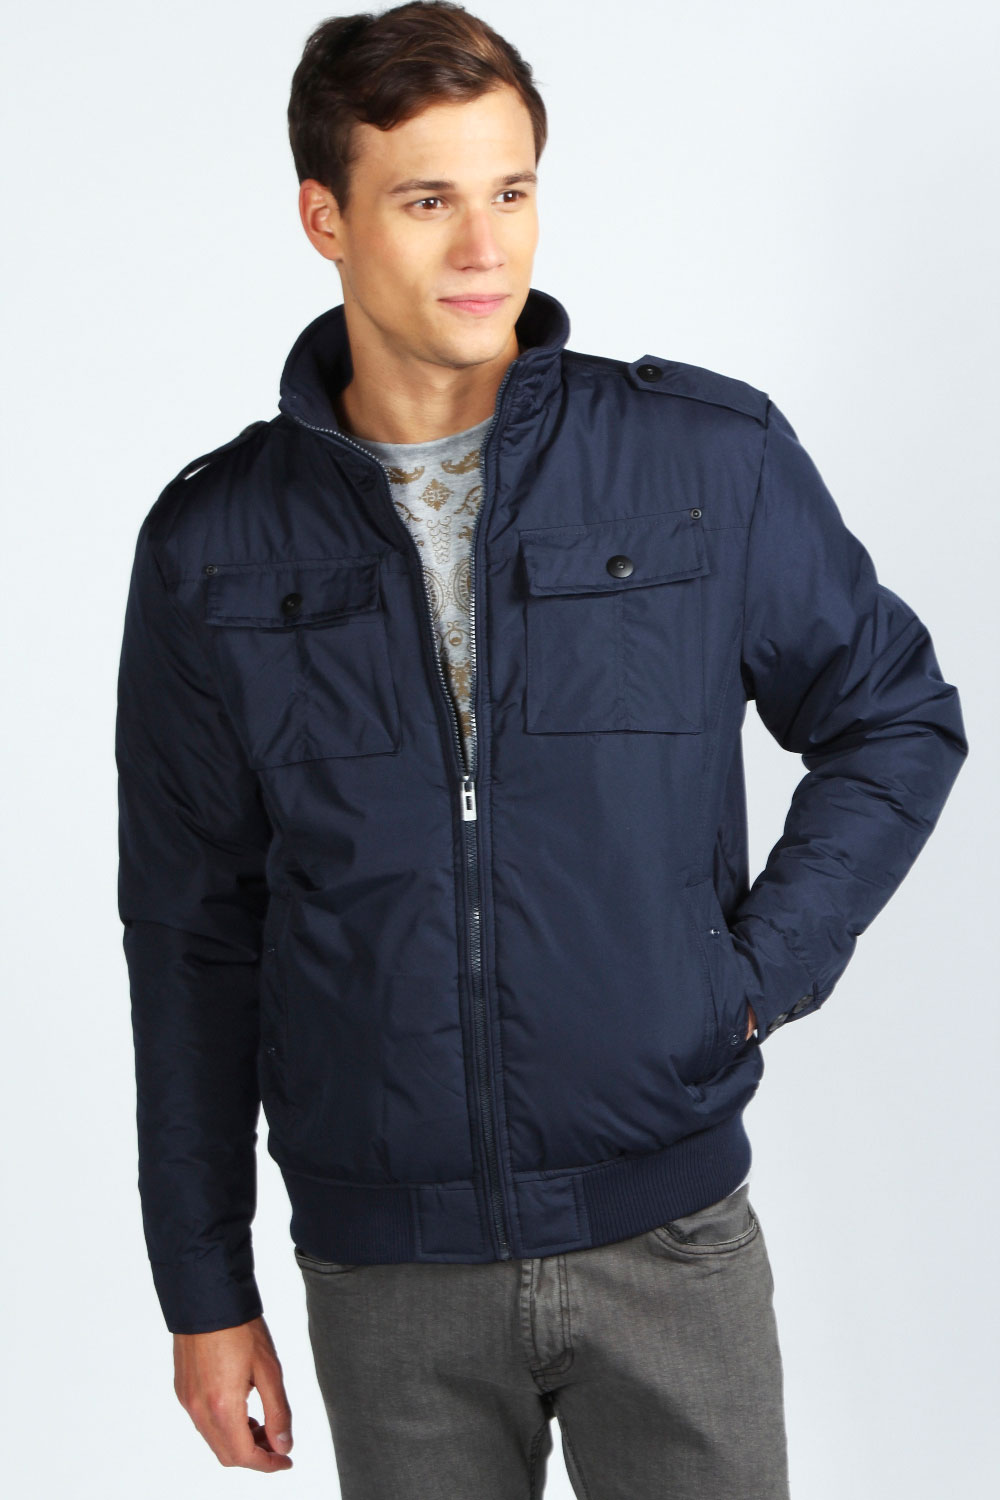 Find great deals on eBay for mens navy blue jacket. Shop with confidence.